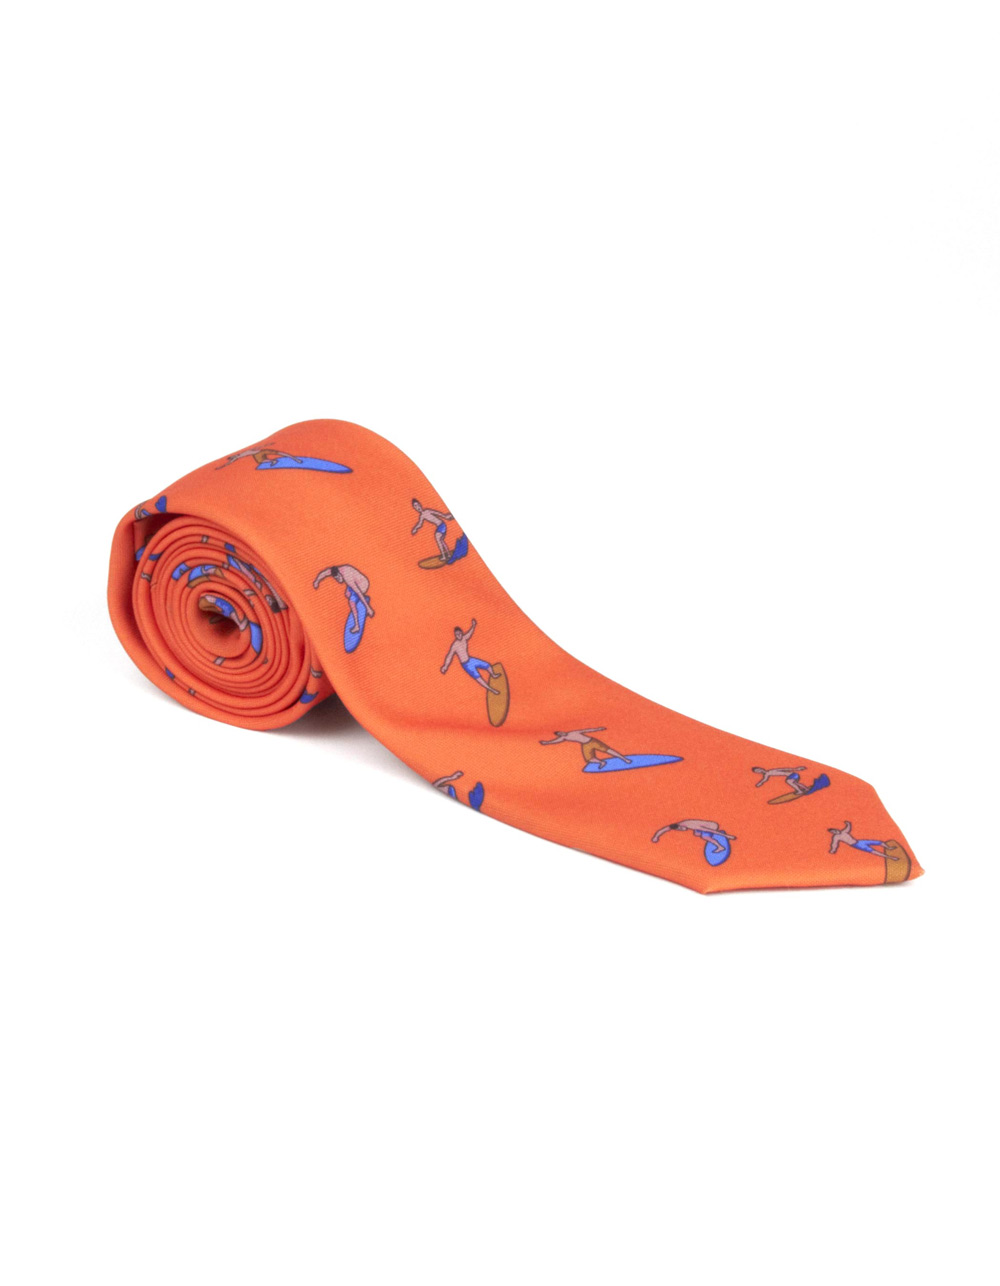 Orange surfer tie